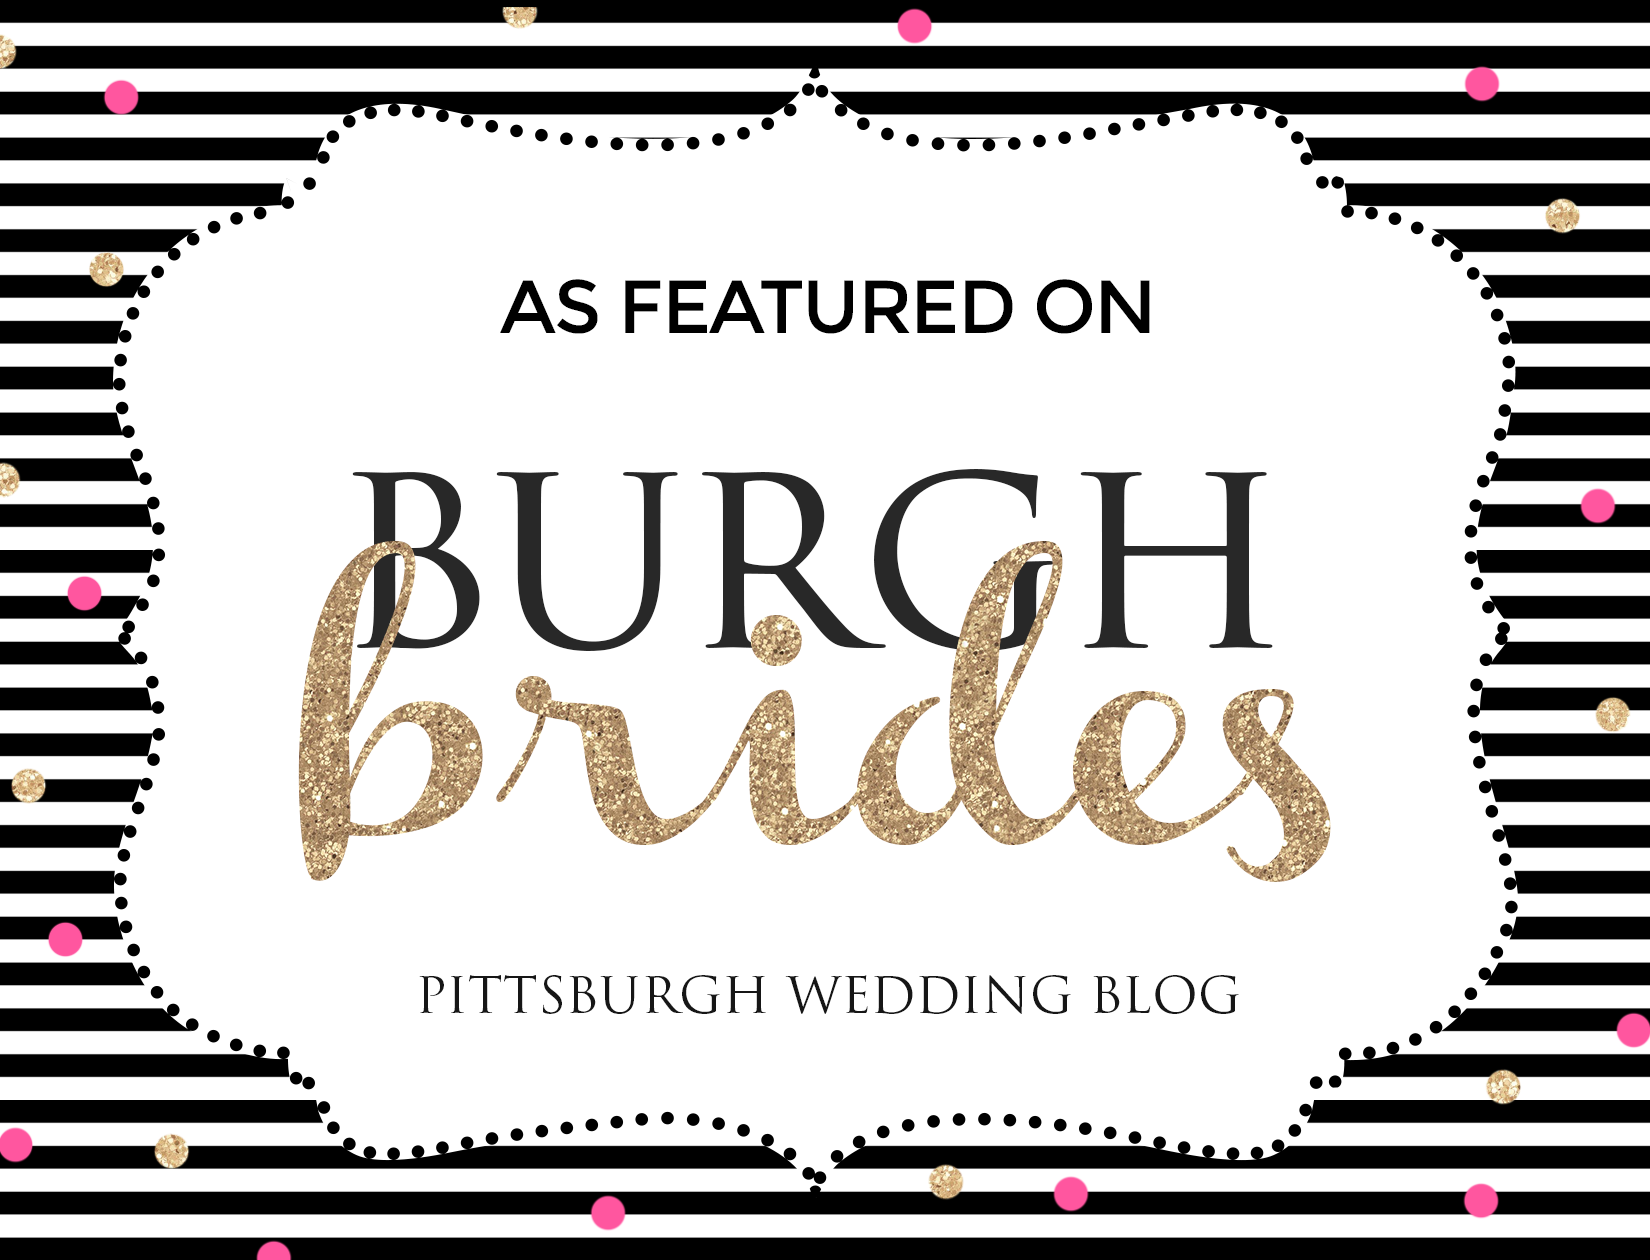 PartySavvy Burgh Brides Feature 2015